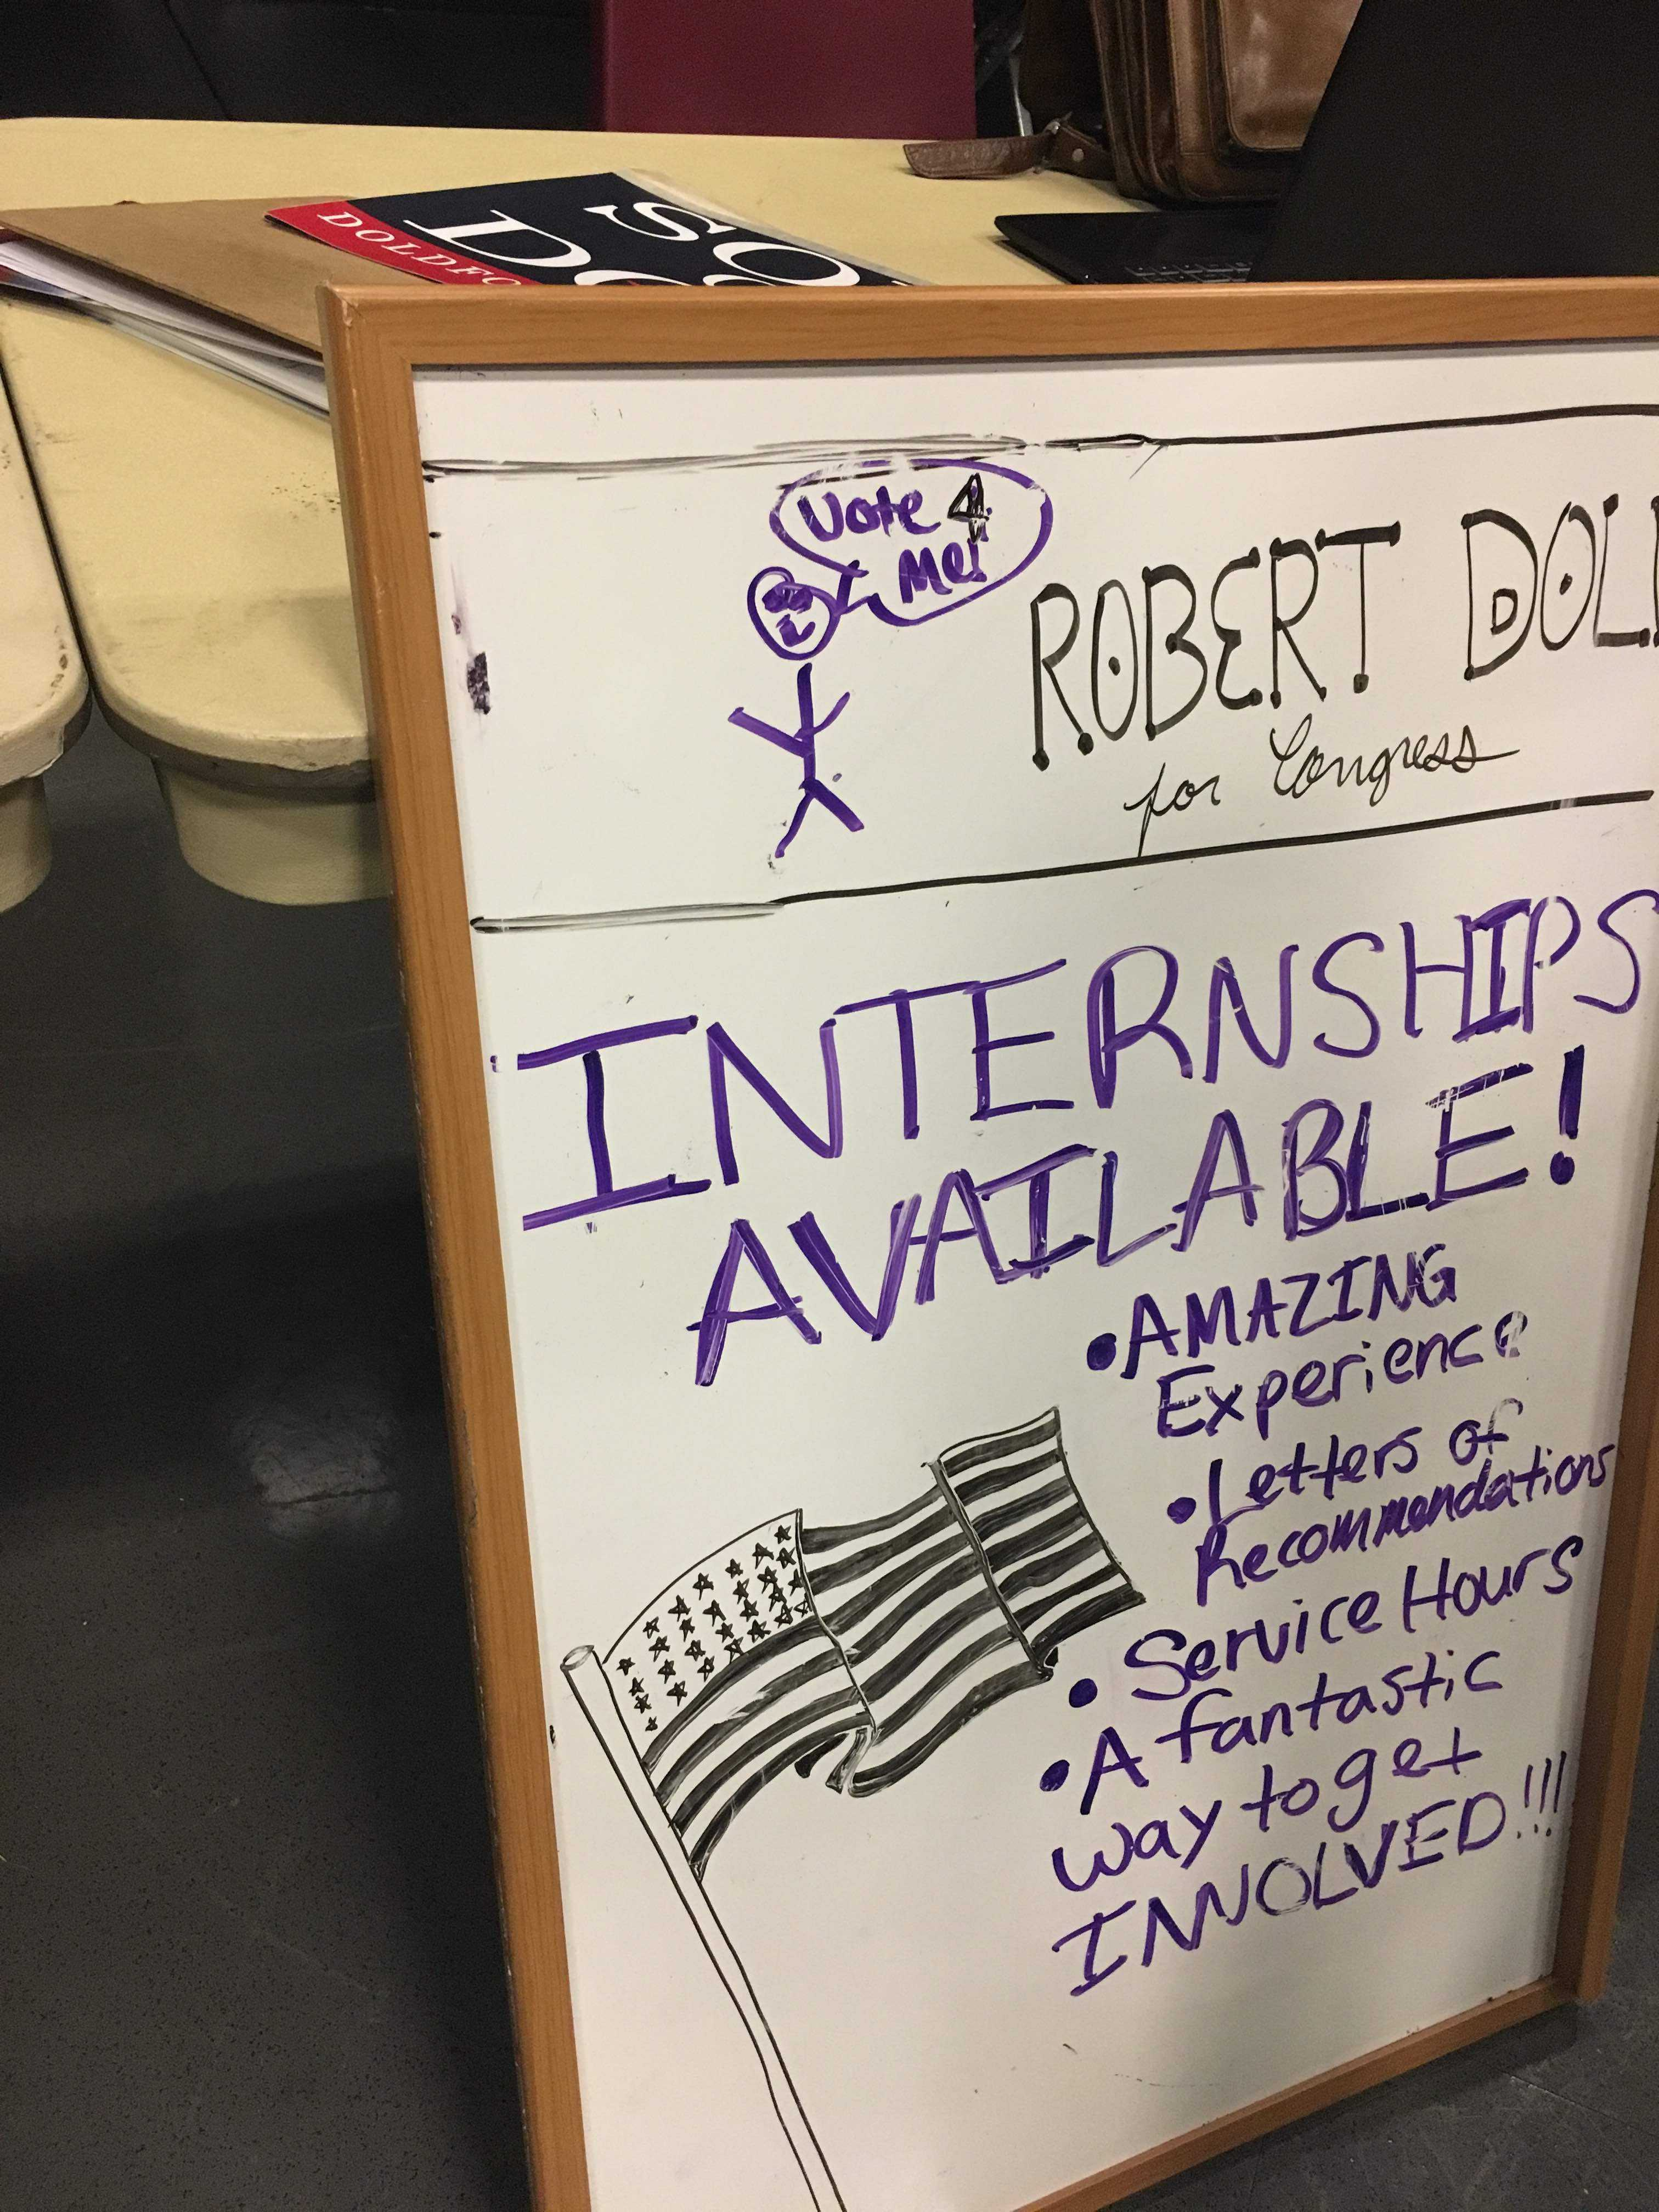 An+advertisement+for+internships+with+the++Dold+campaign.